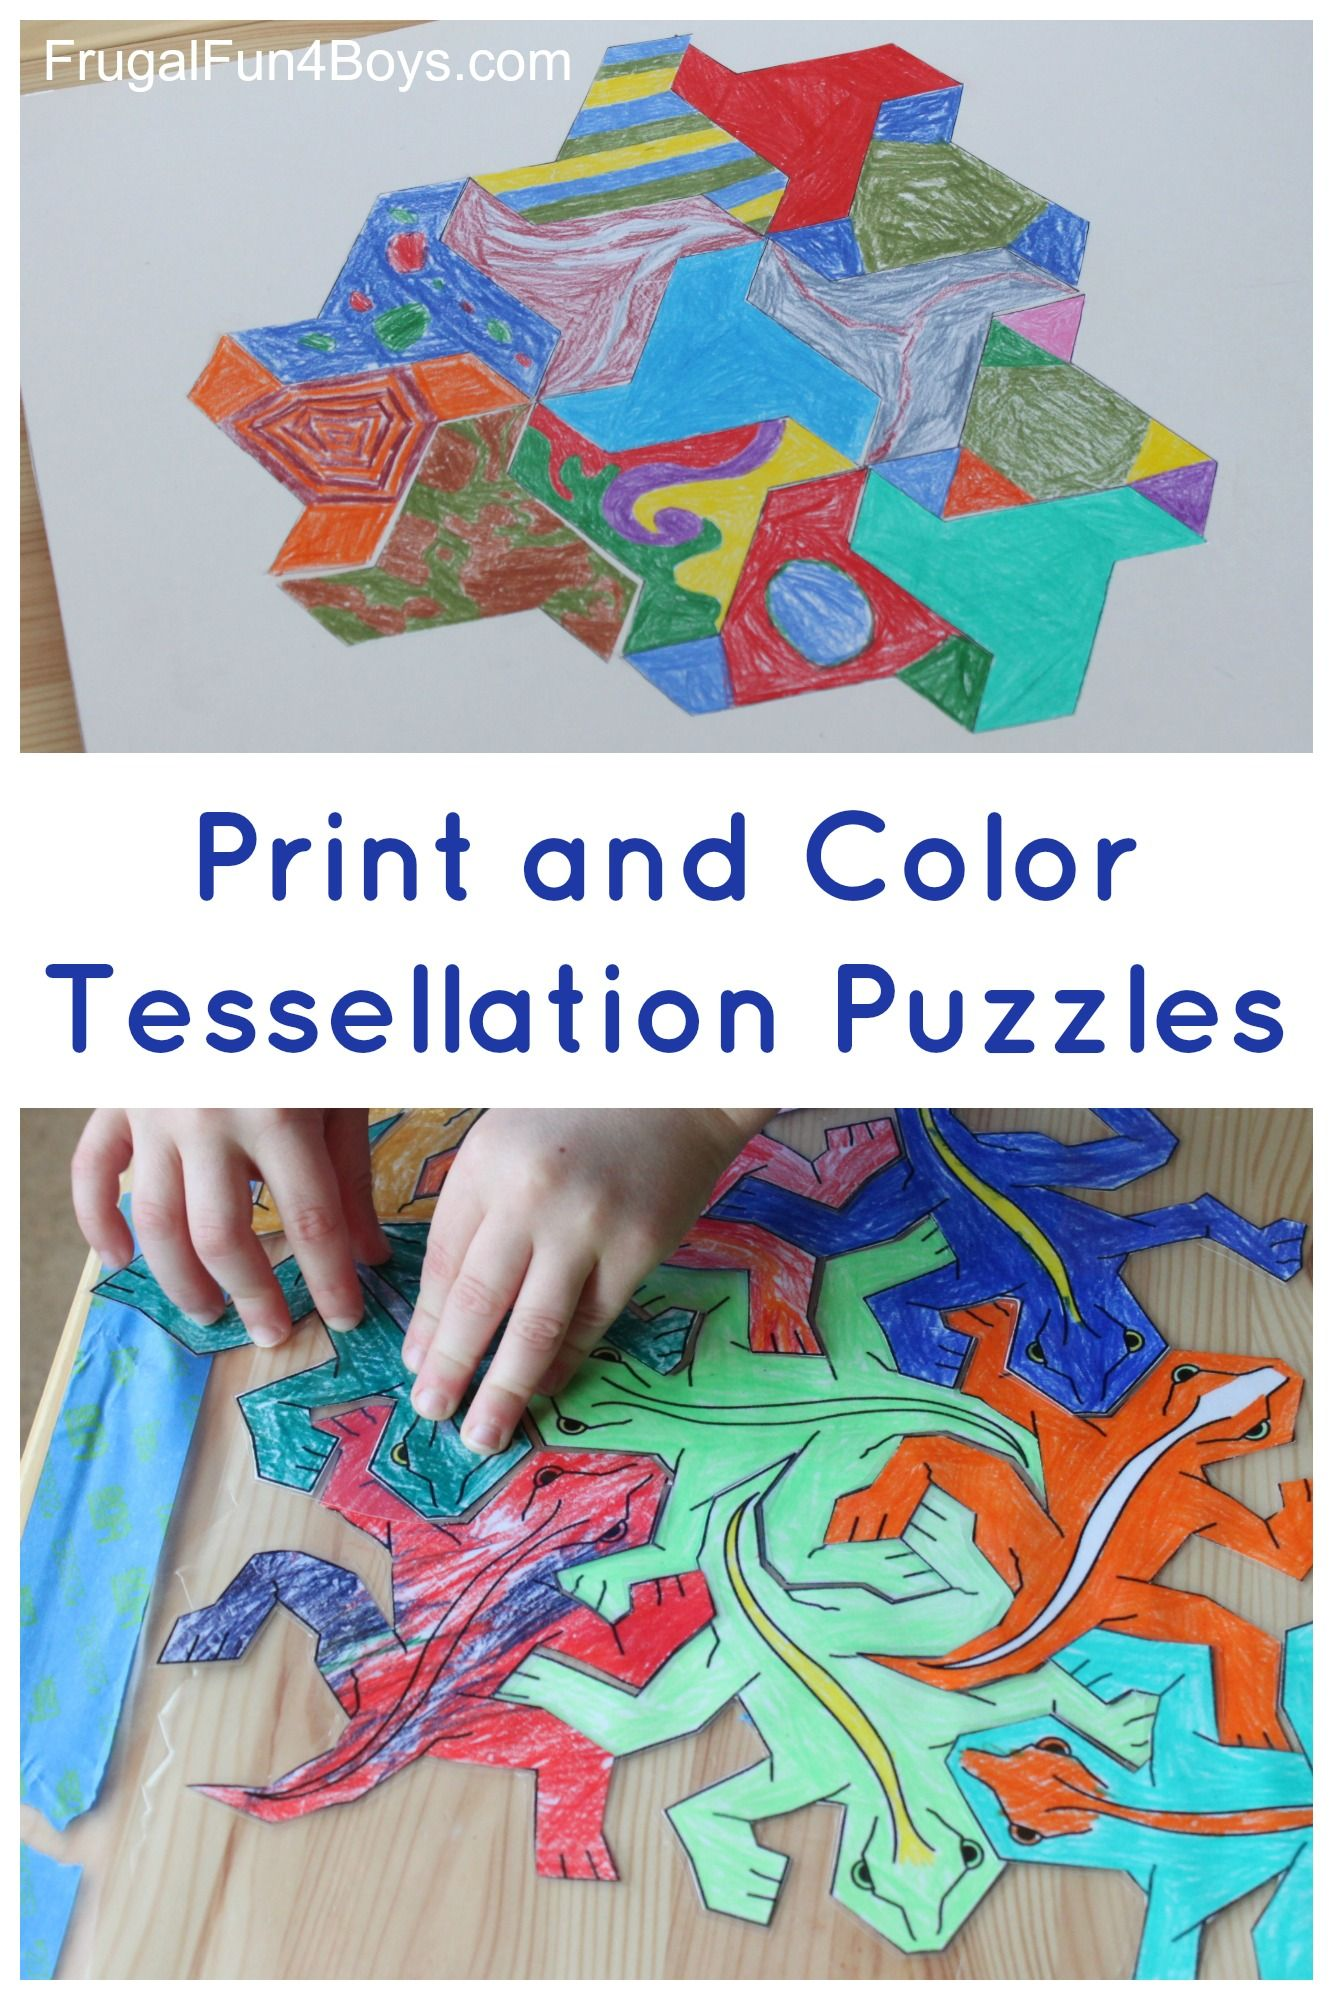 Print And Color Tessellation Puzzles For Kids